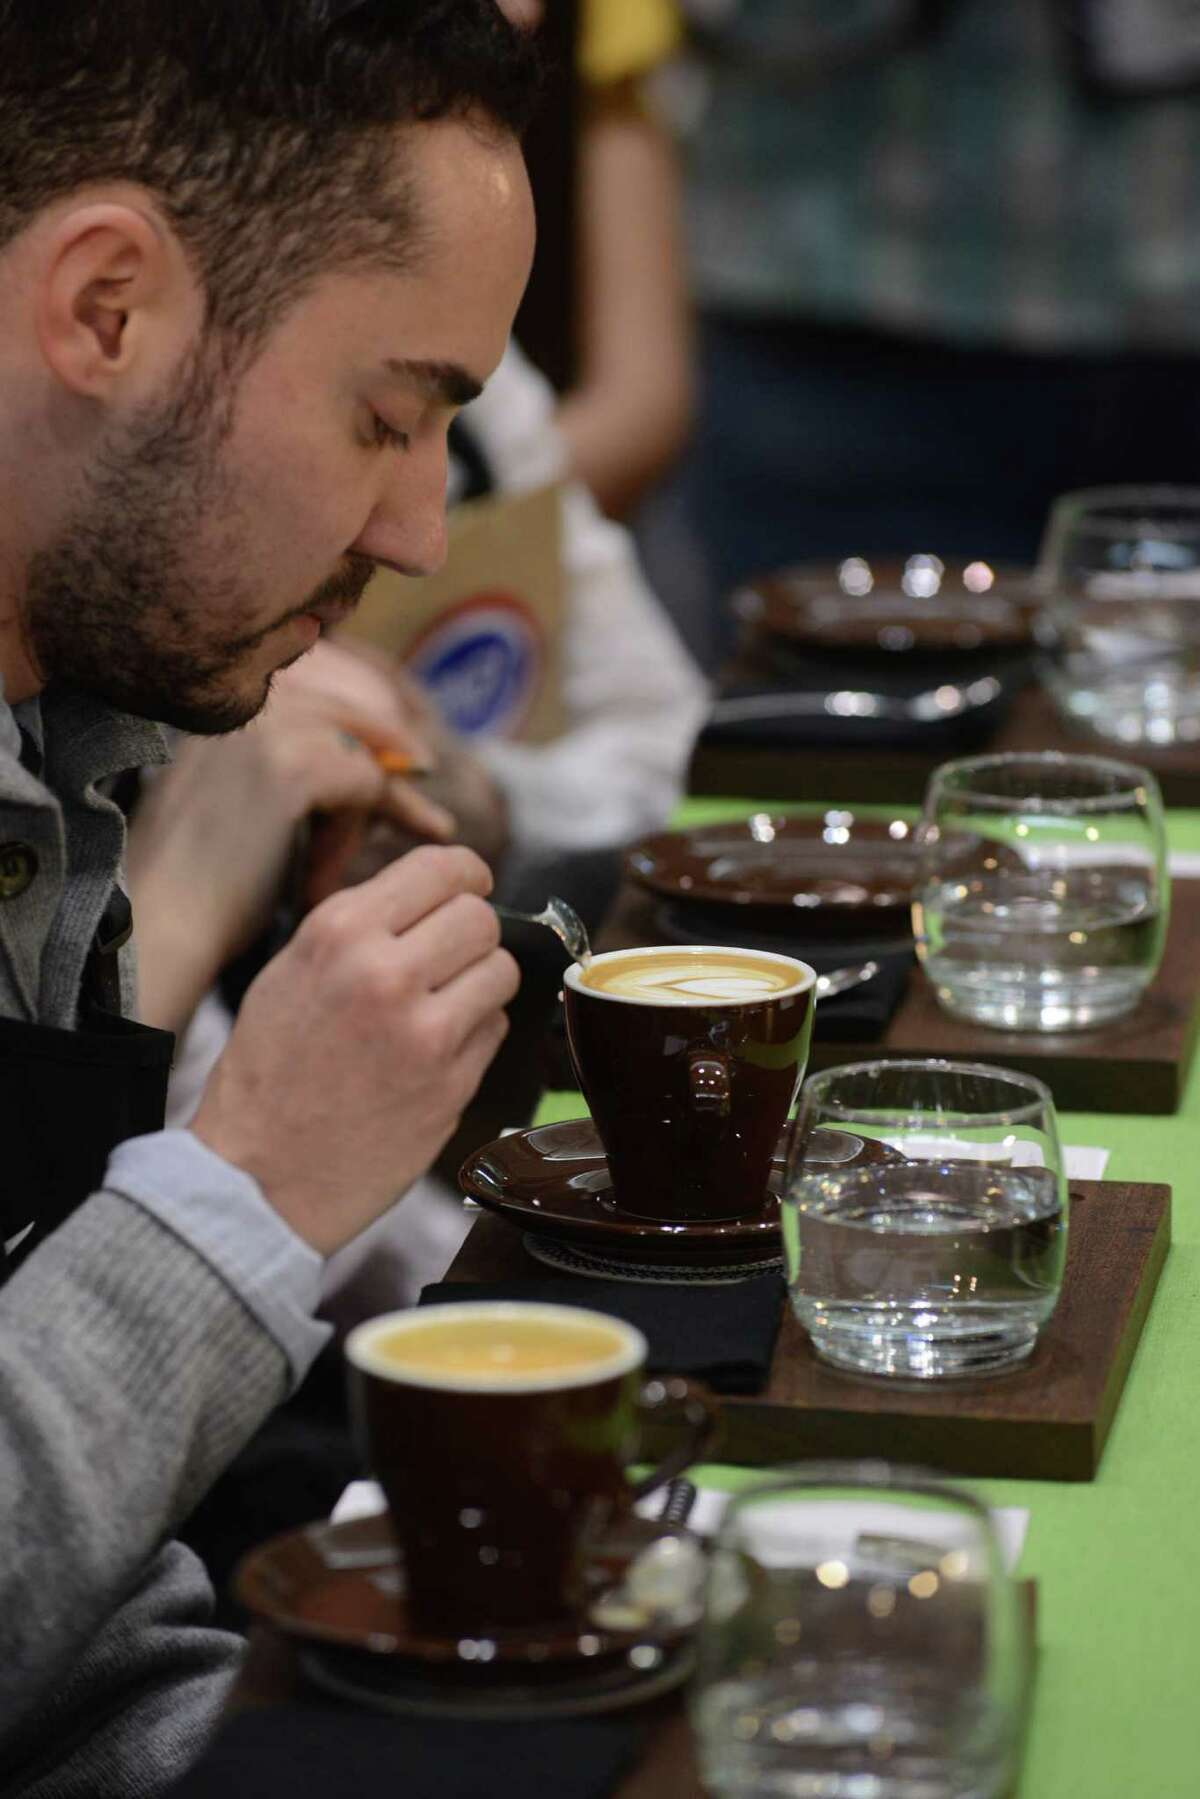 BOSTON - APRIL 13: Judges test coffee during the U.S. Barista Championships at the Coffee Industry Expo at the Boston Convention and Exhibition Center April 13, 2013 in Boston, Massachusetts. Fifty of the county's best baristas got 15 minutes to prepare and serve four espressos, four cappuccinos and four signature beverages to a panel of judges. The annual event brings in thousands of coffee lovers from around the country.